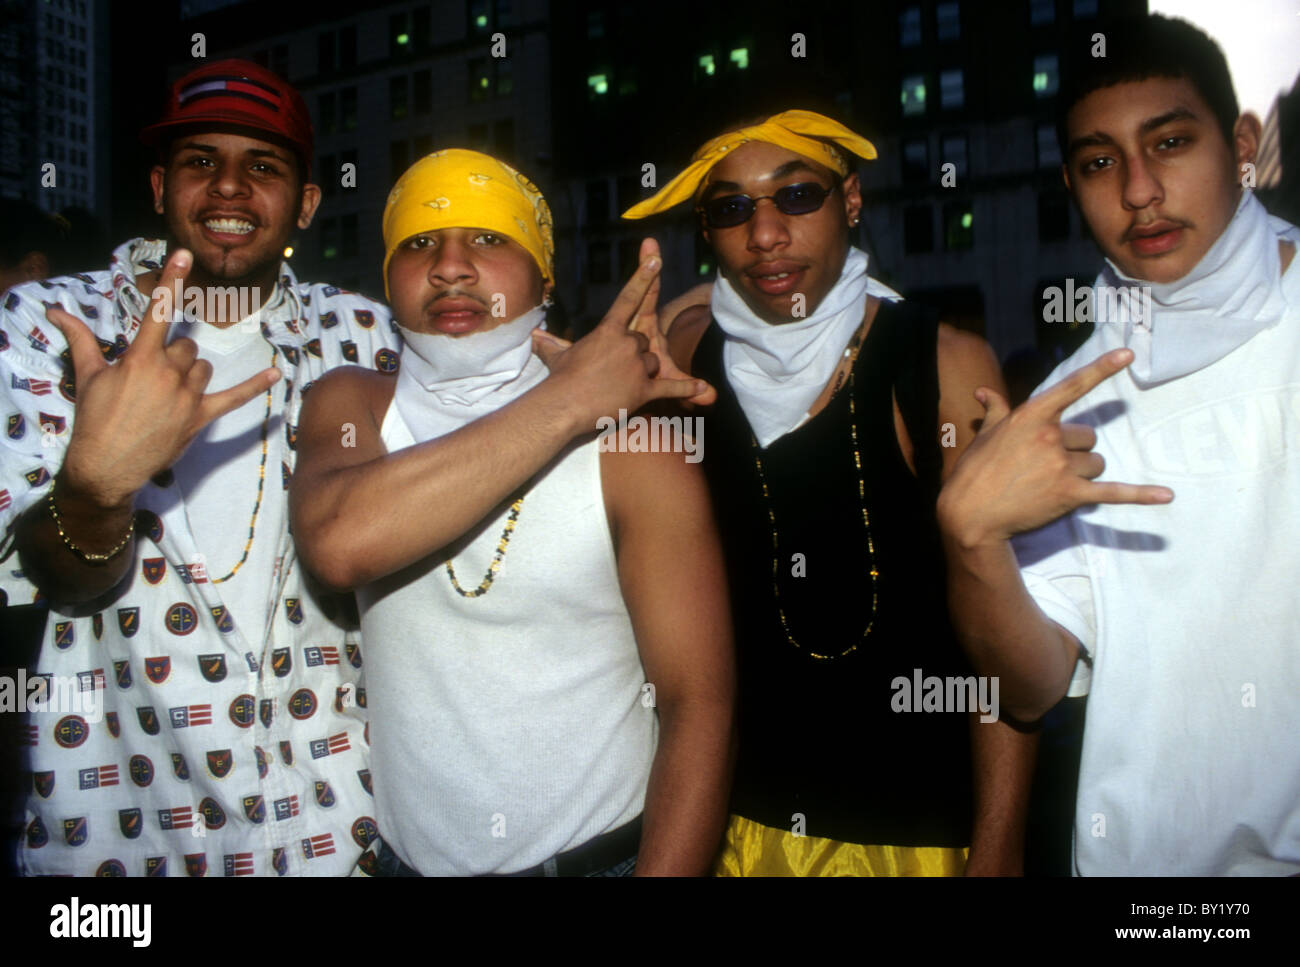 Members of the Latin Kings gang display their gang signs during a rally for racial justice in New York in 1998 - Stock Image